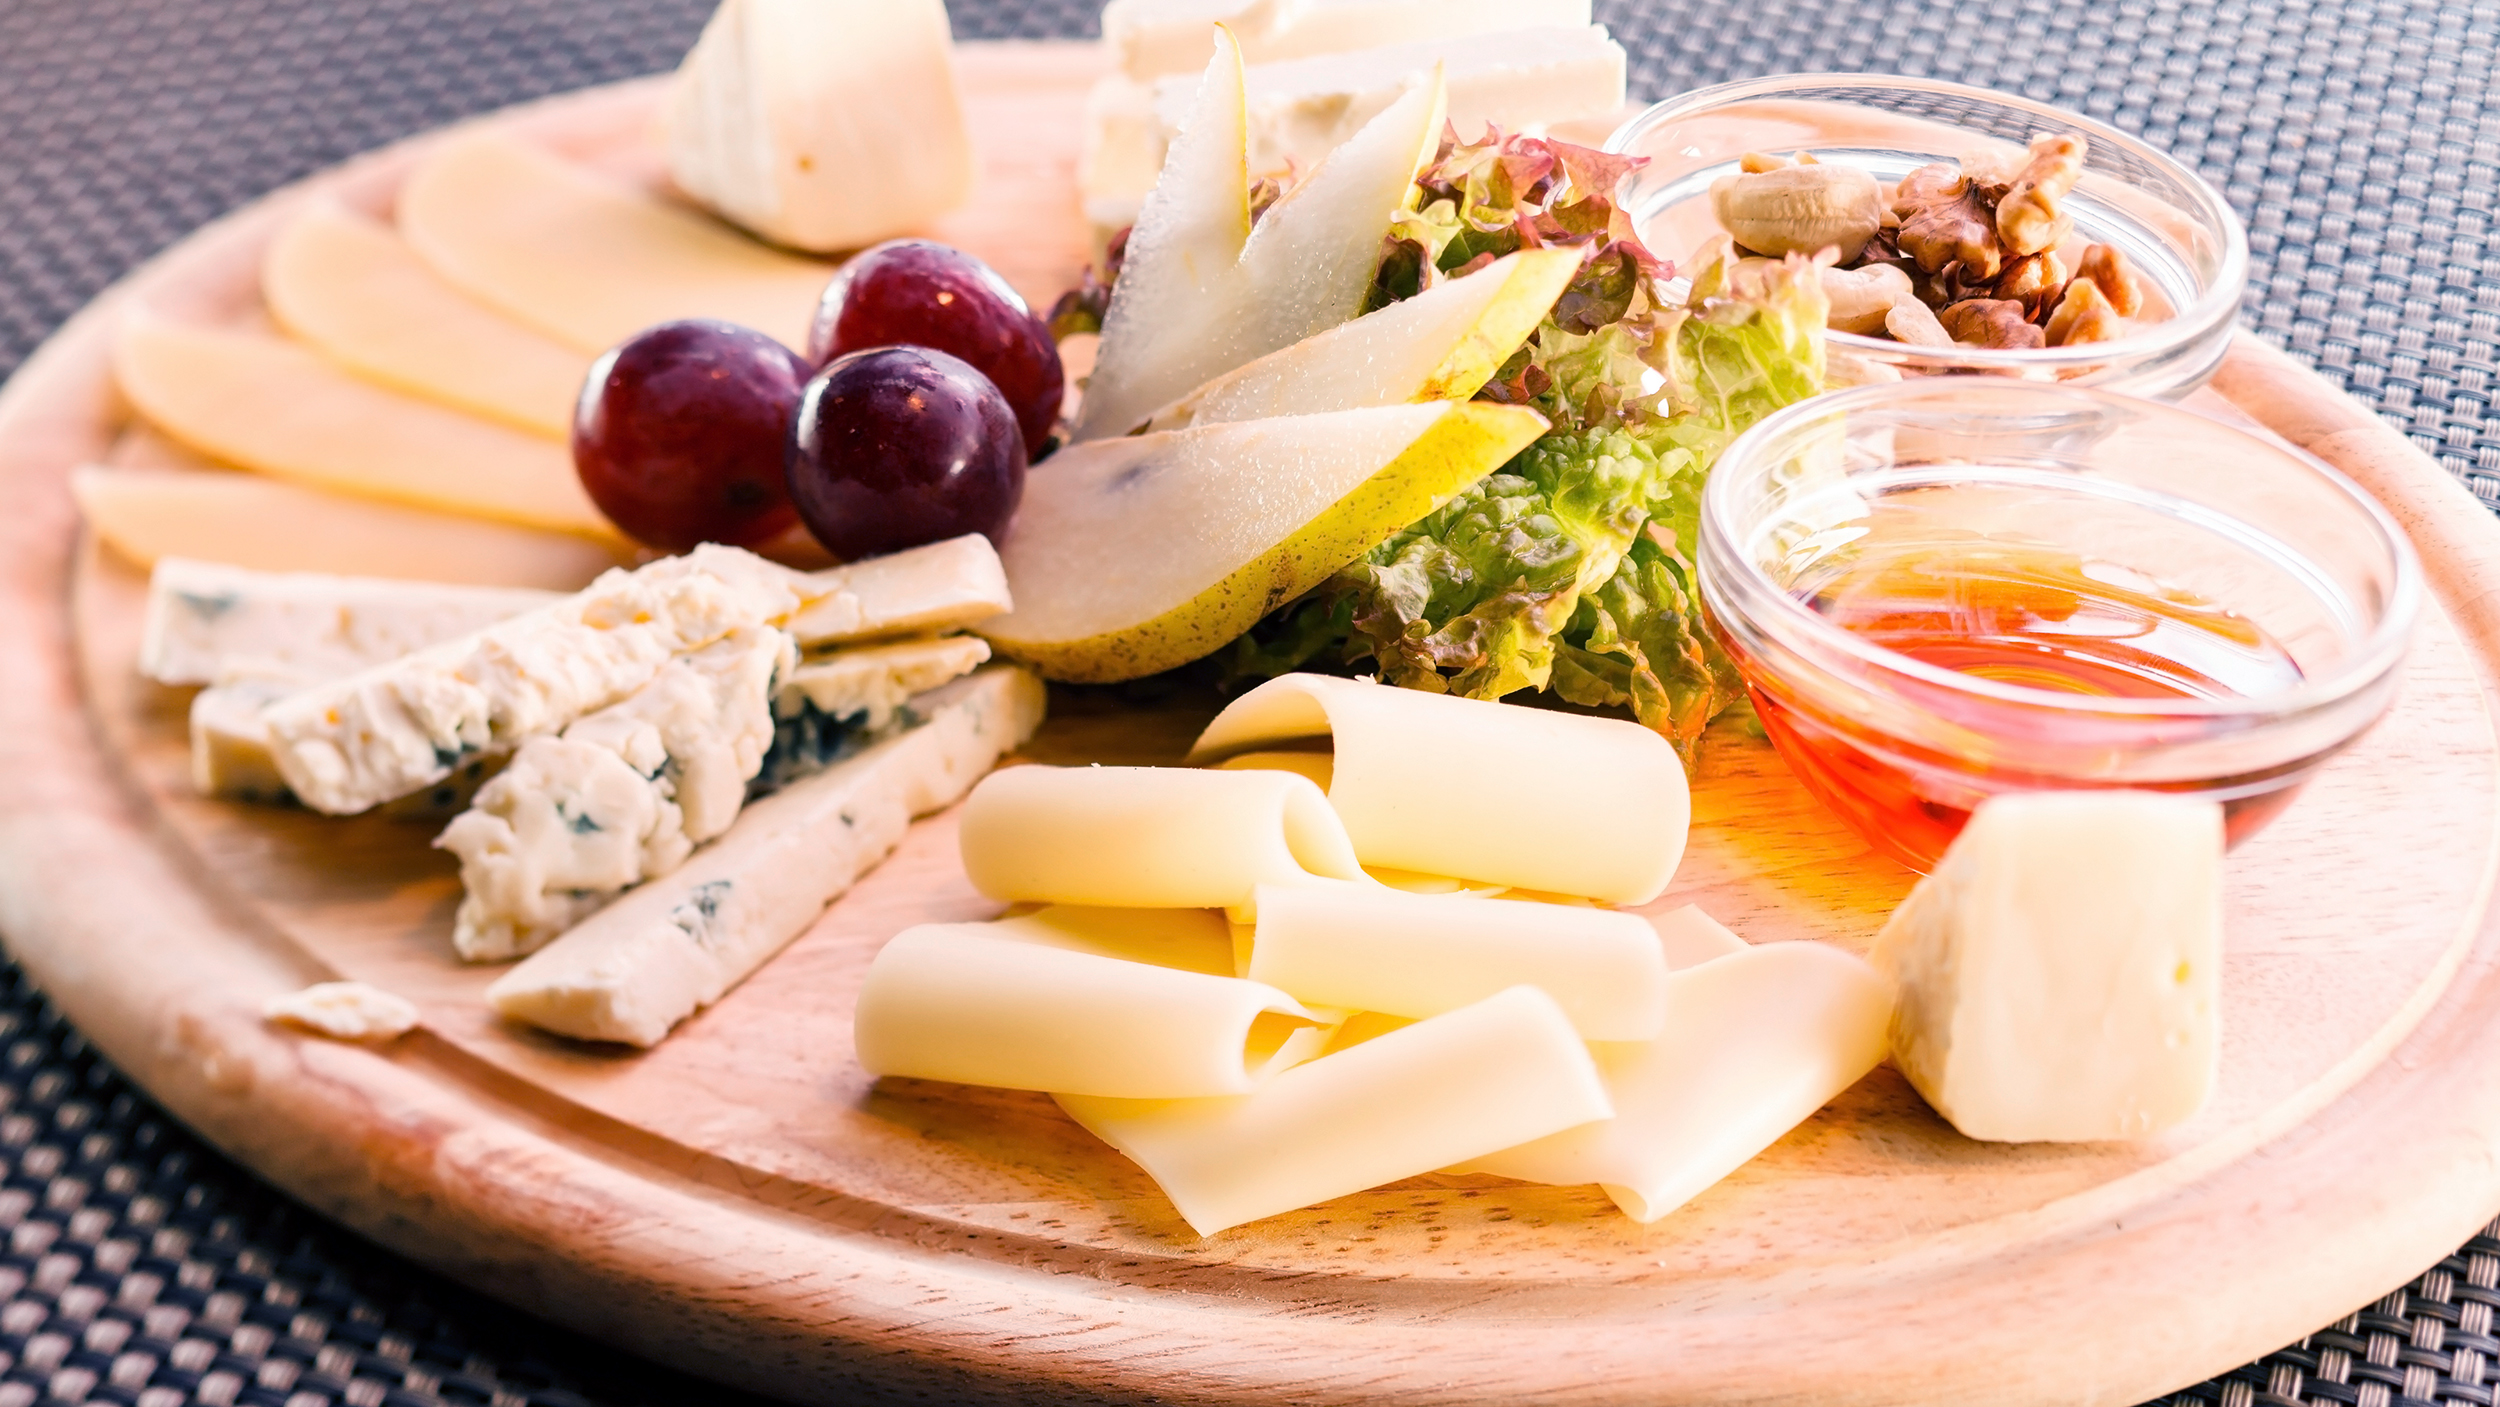 How to build the perfect cheese board, according to an expert